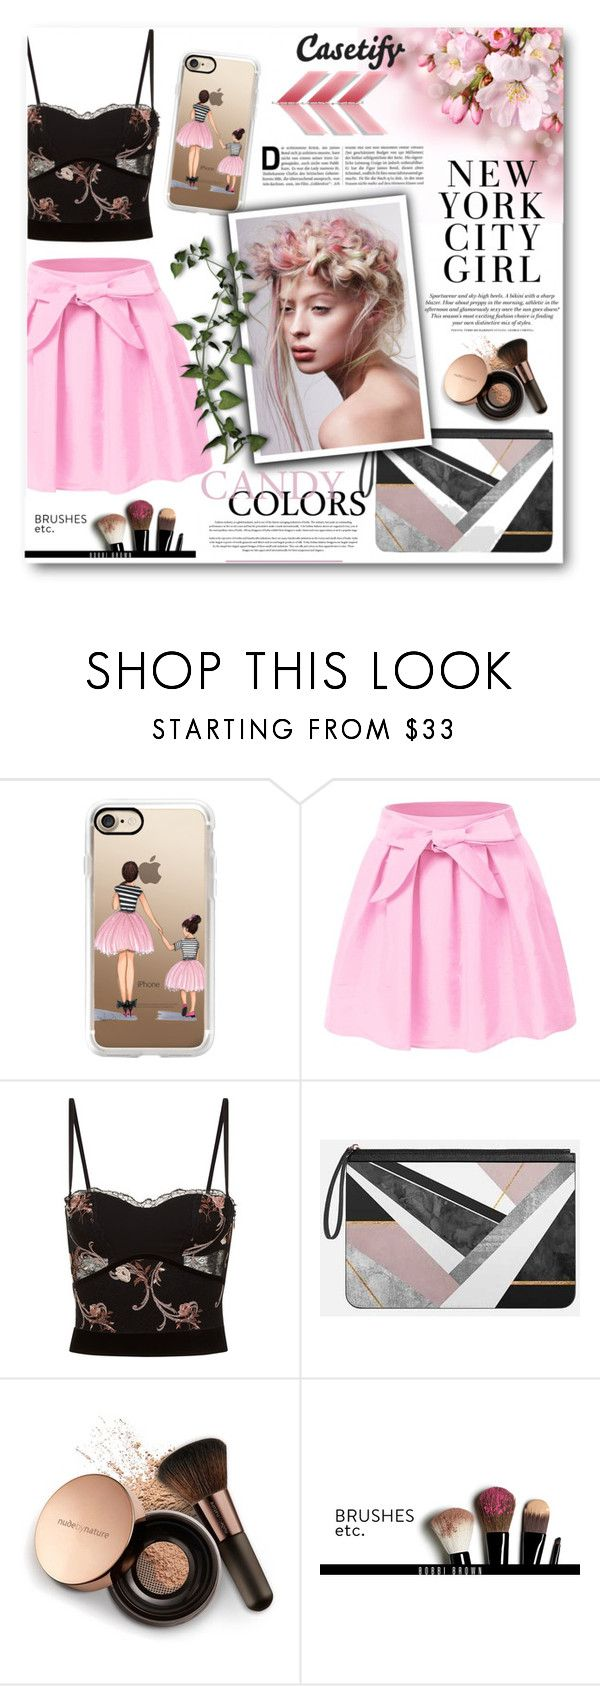 """""""Casetify 5"""" by tanja133 ❤ liked on Polyvore featuring Casetify, La Perla, H&M, Nude by Nature and Bobbi Brown Cosmetics"""